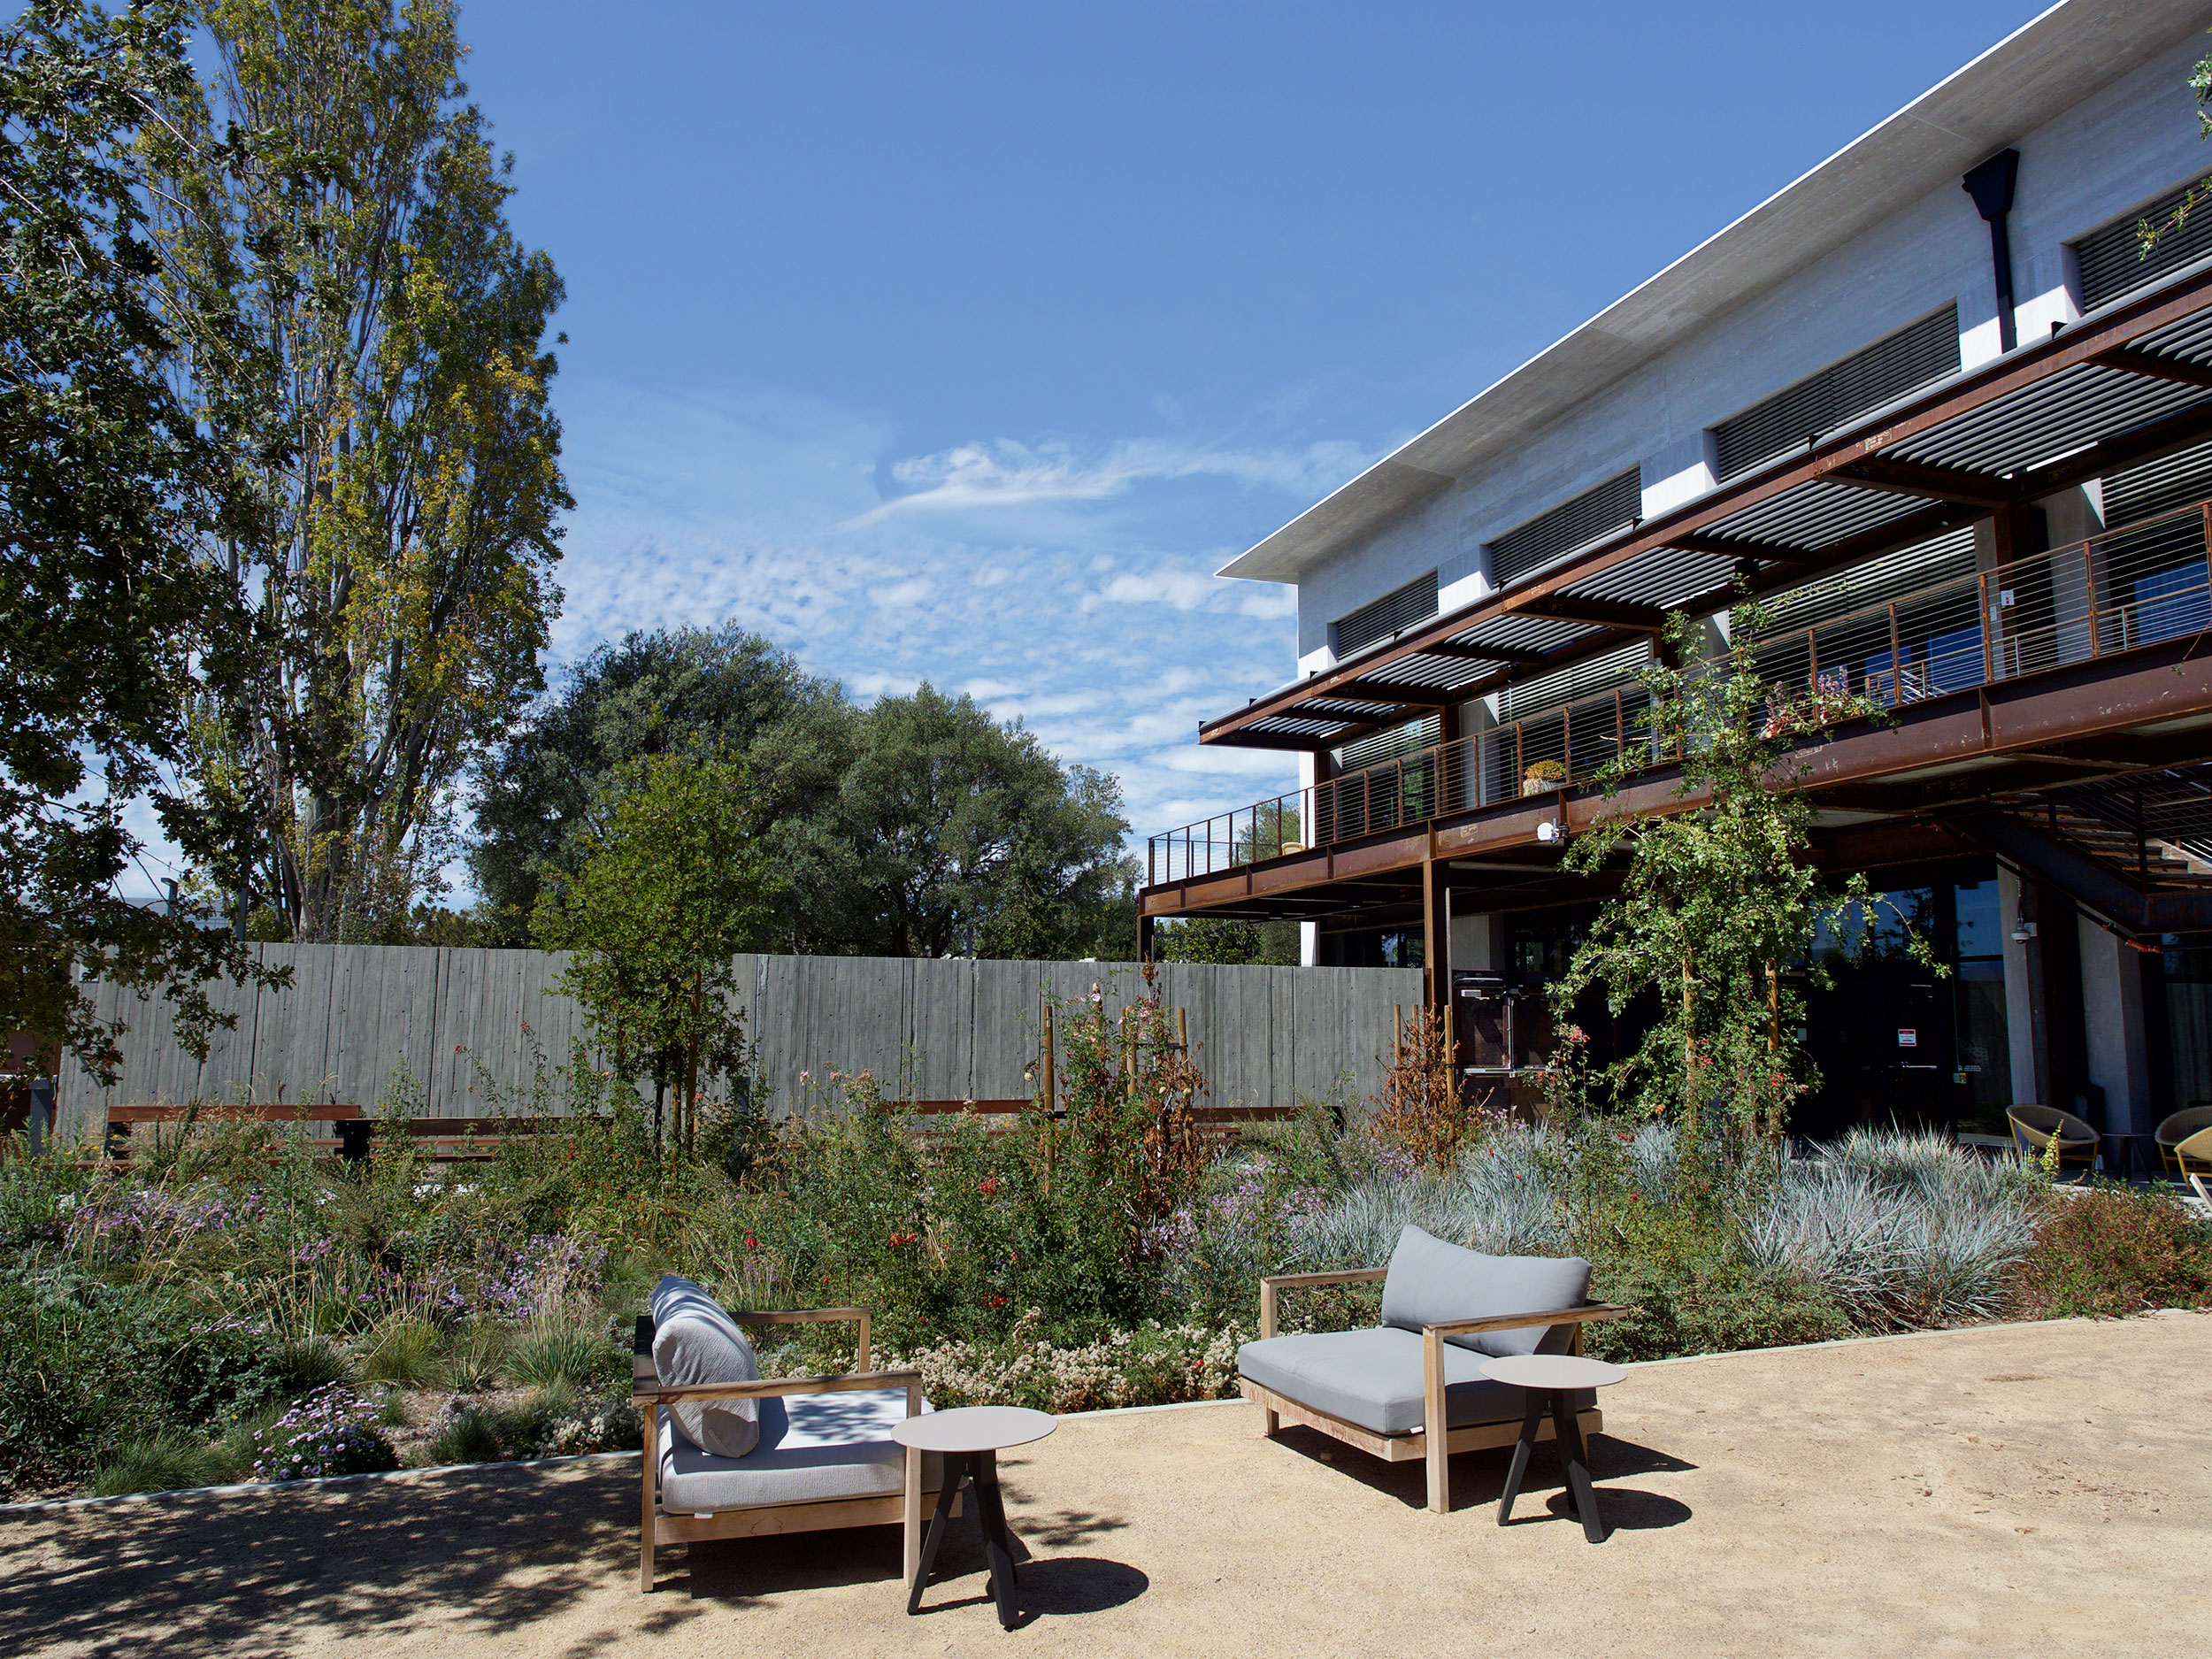 Google at 1212 Bordeaux, Garden, Courtyard, Terrace, Biophilia, Natural Habitat, Light, Gathering, Outdoor Room